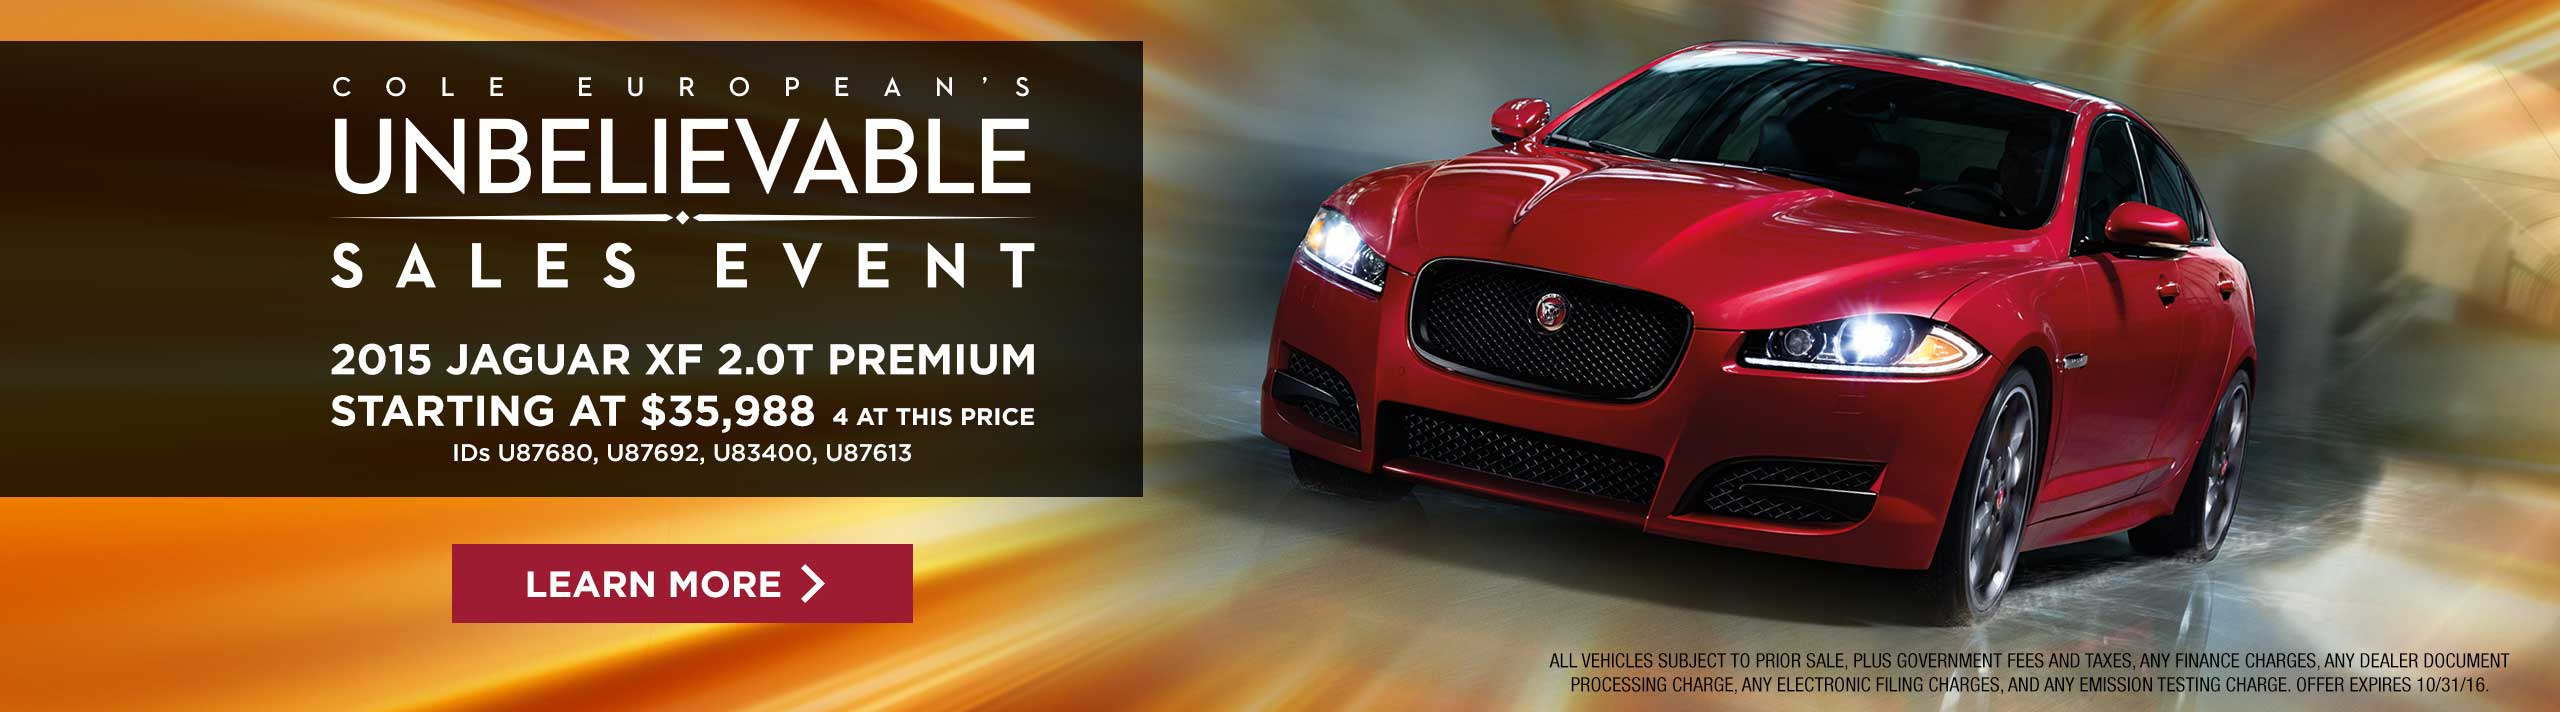 Jaguar - Unbelievable Sales Event